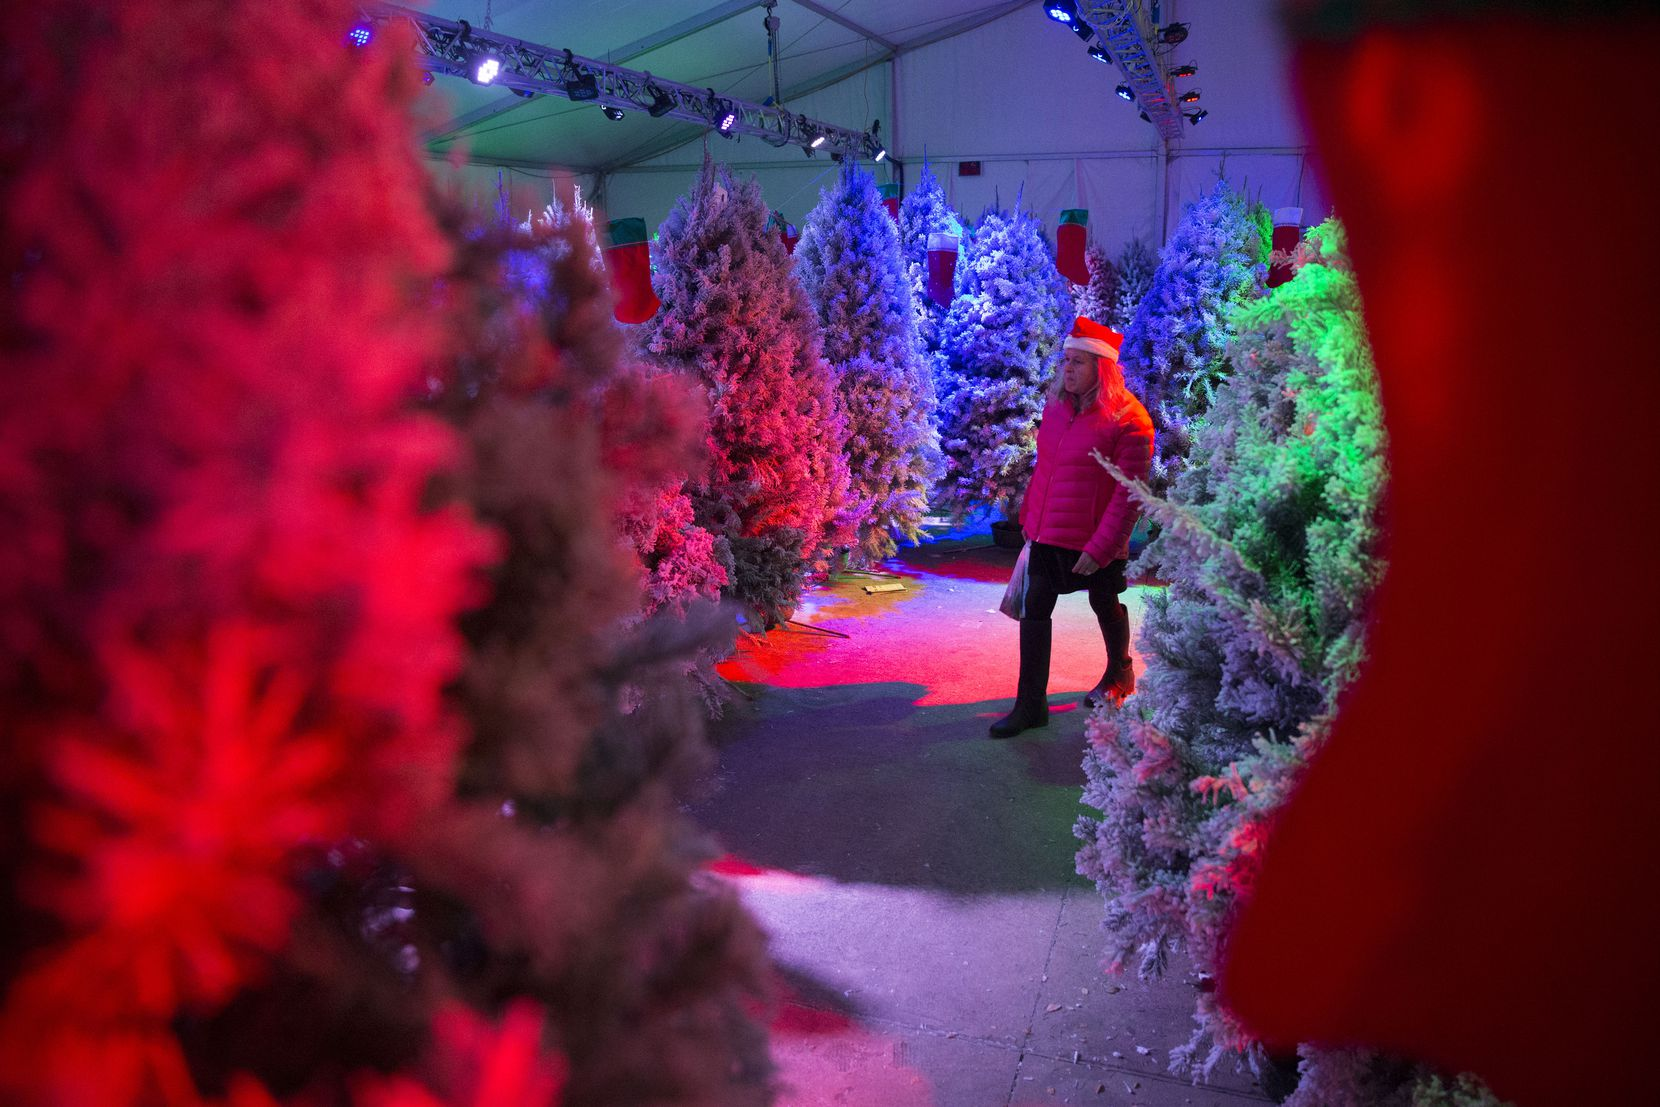 In addition to 175,000 lights blinking to holiday music, Frisco's Christmas in the Square will feature a maze made with hundreds of flocked Christmas trees.